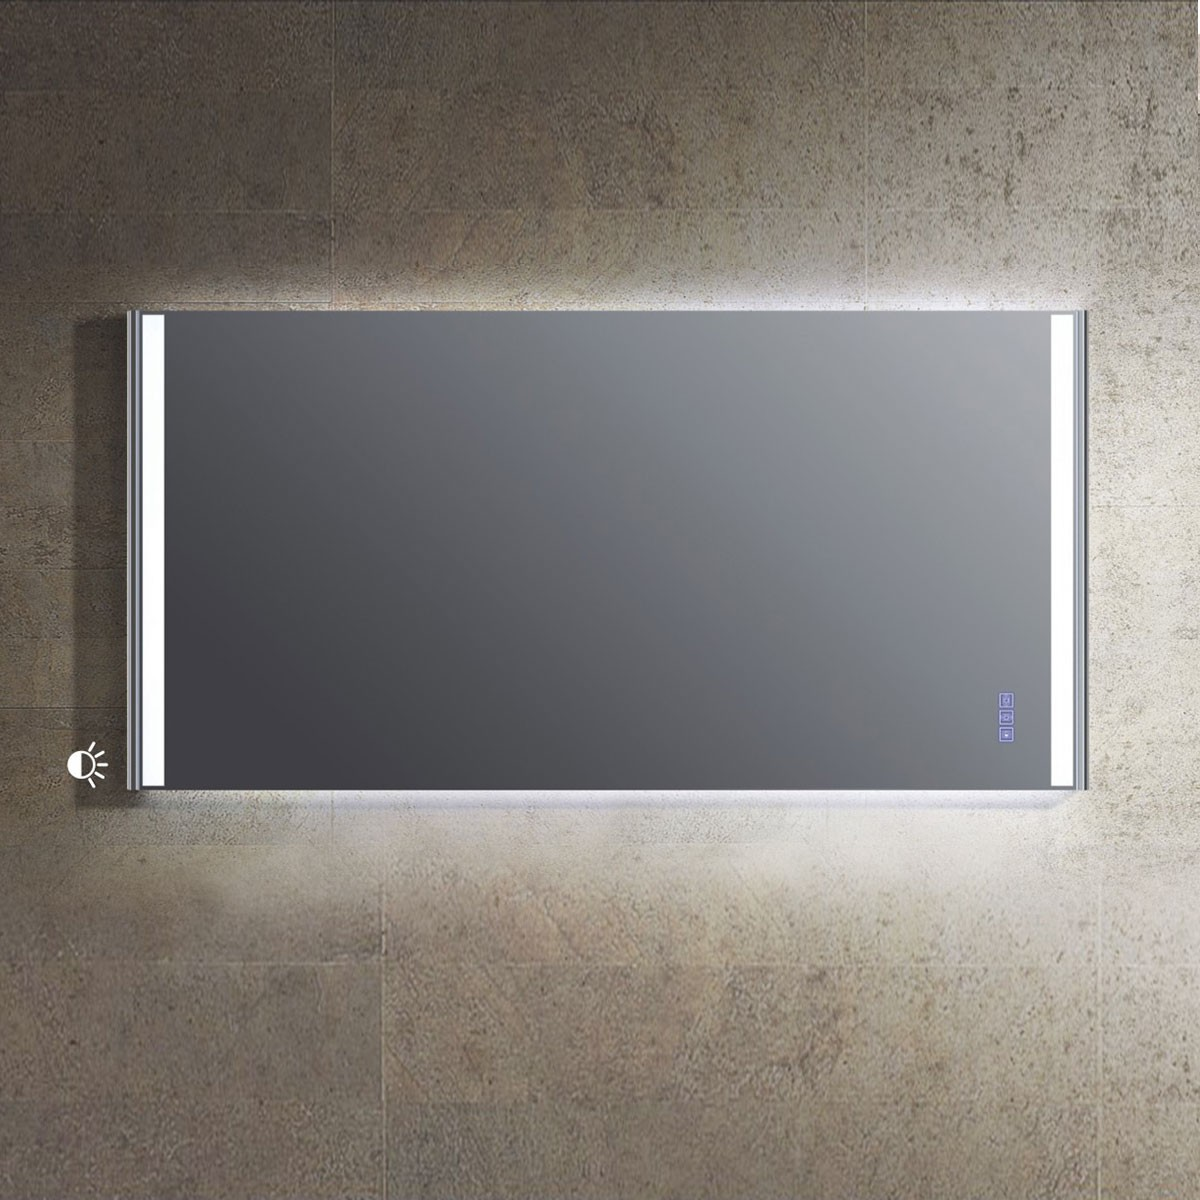 59 x 30 In. Bathroom Vanity LED Mirror with Touch Button (DW1604D-M)